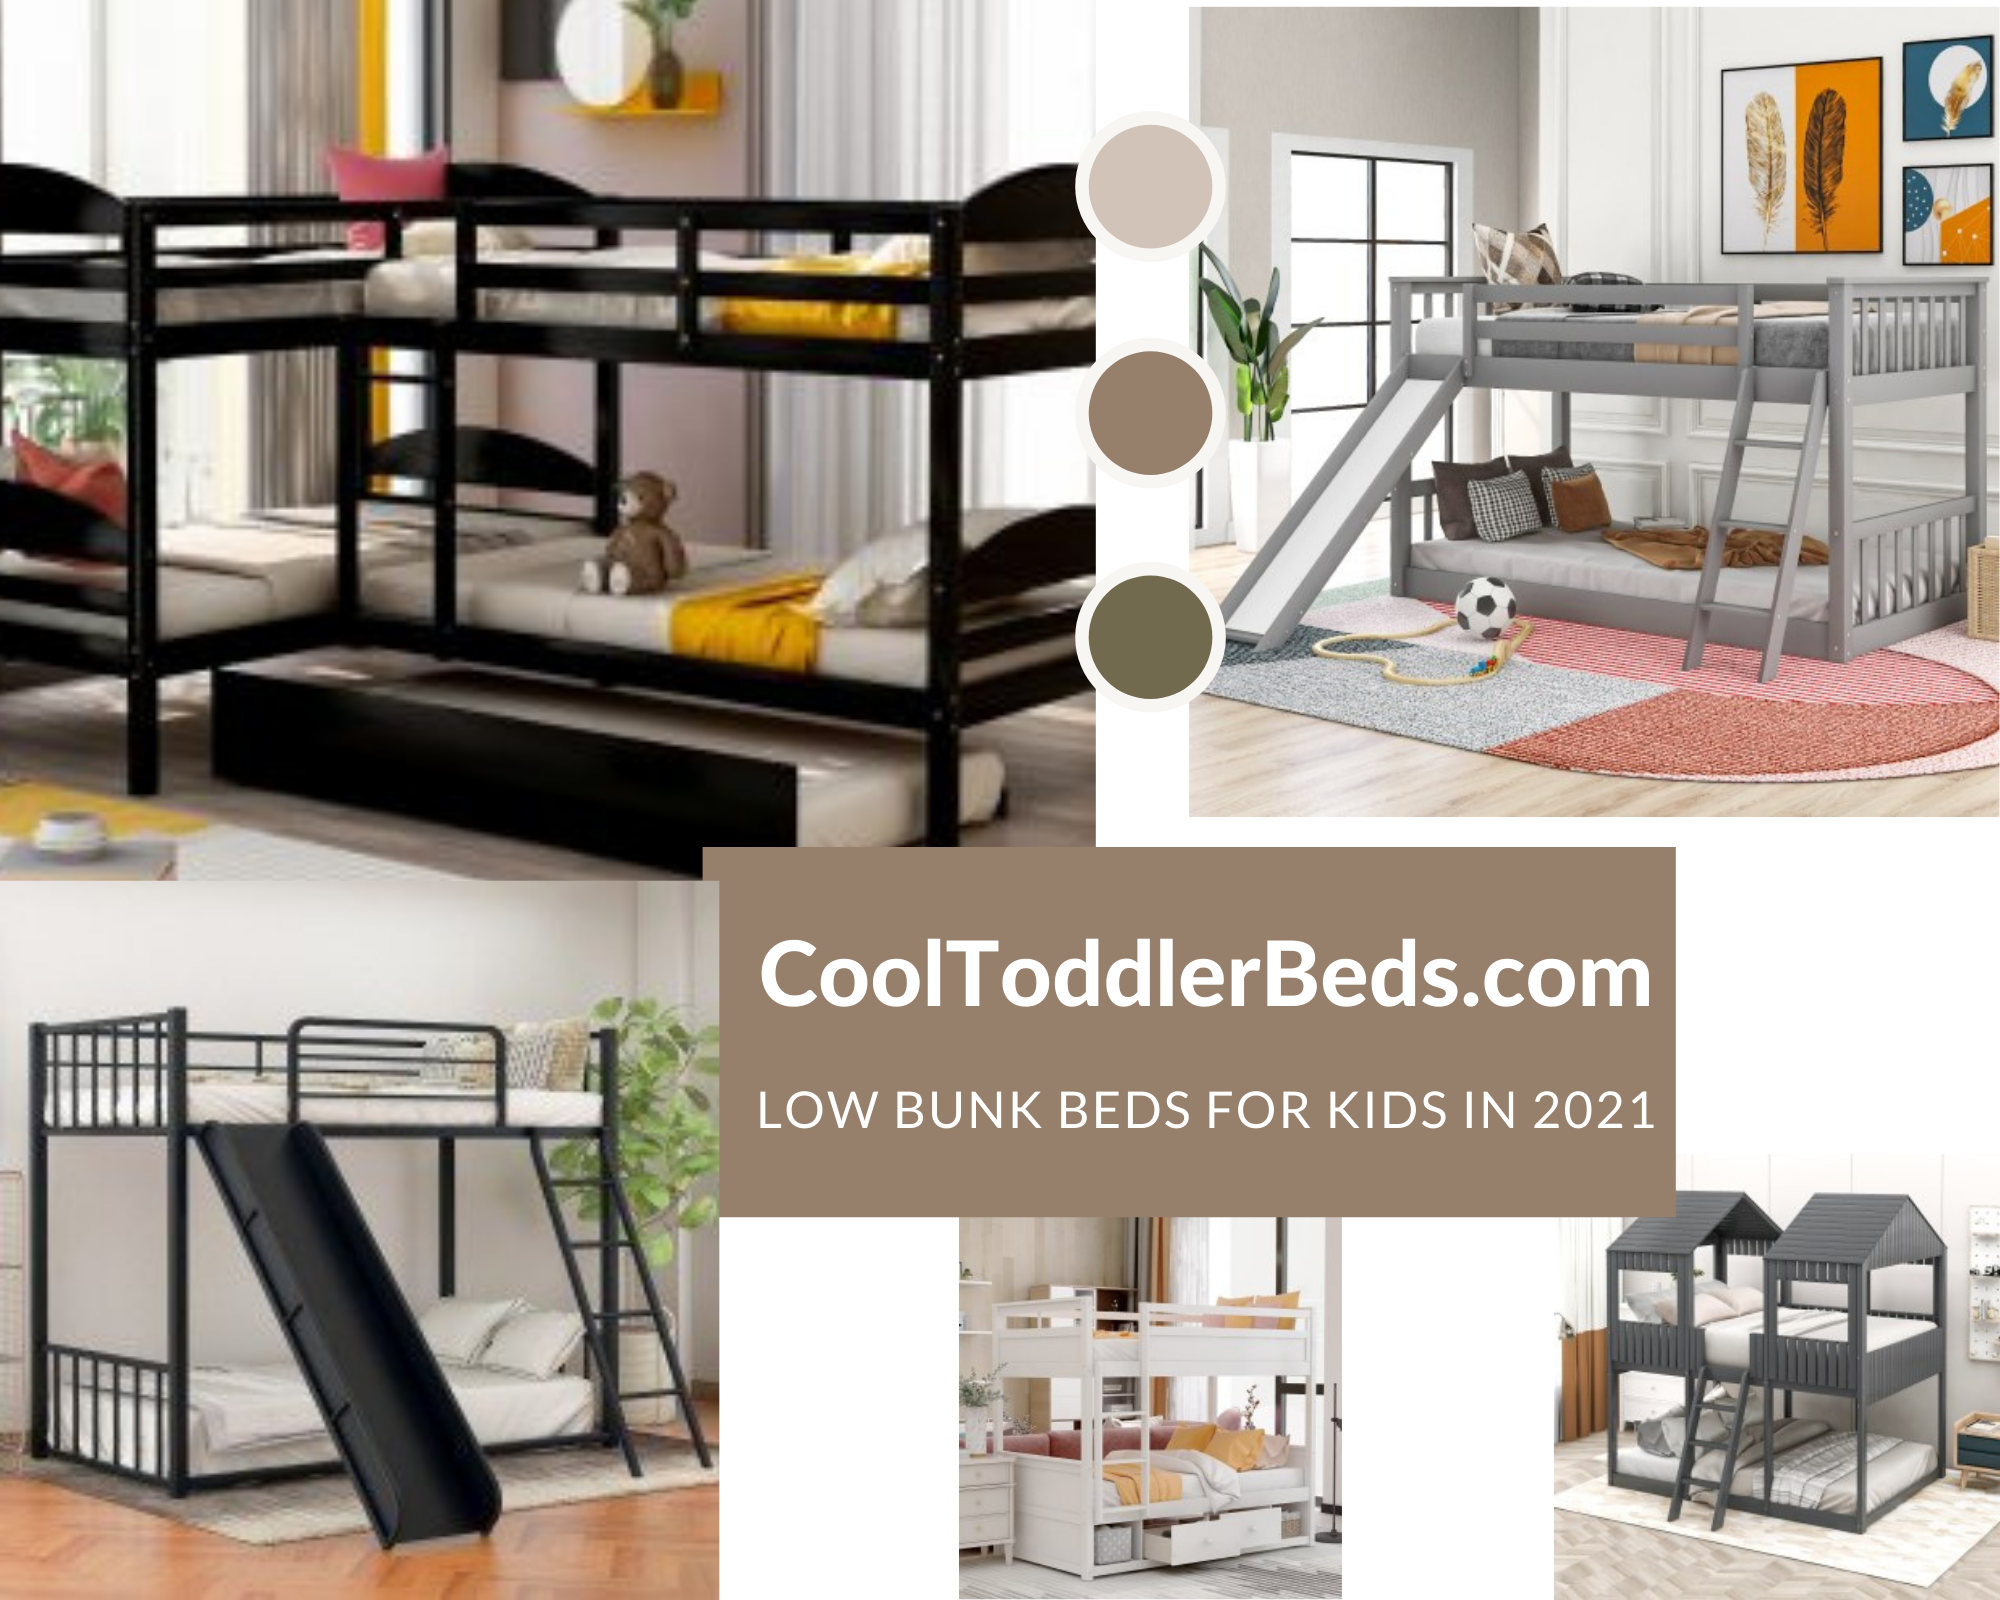 Best Low Bunk Beds for Kids